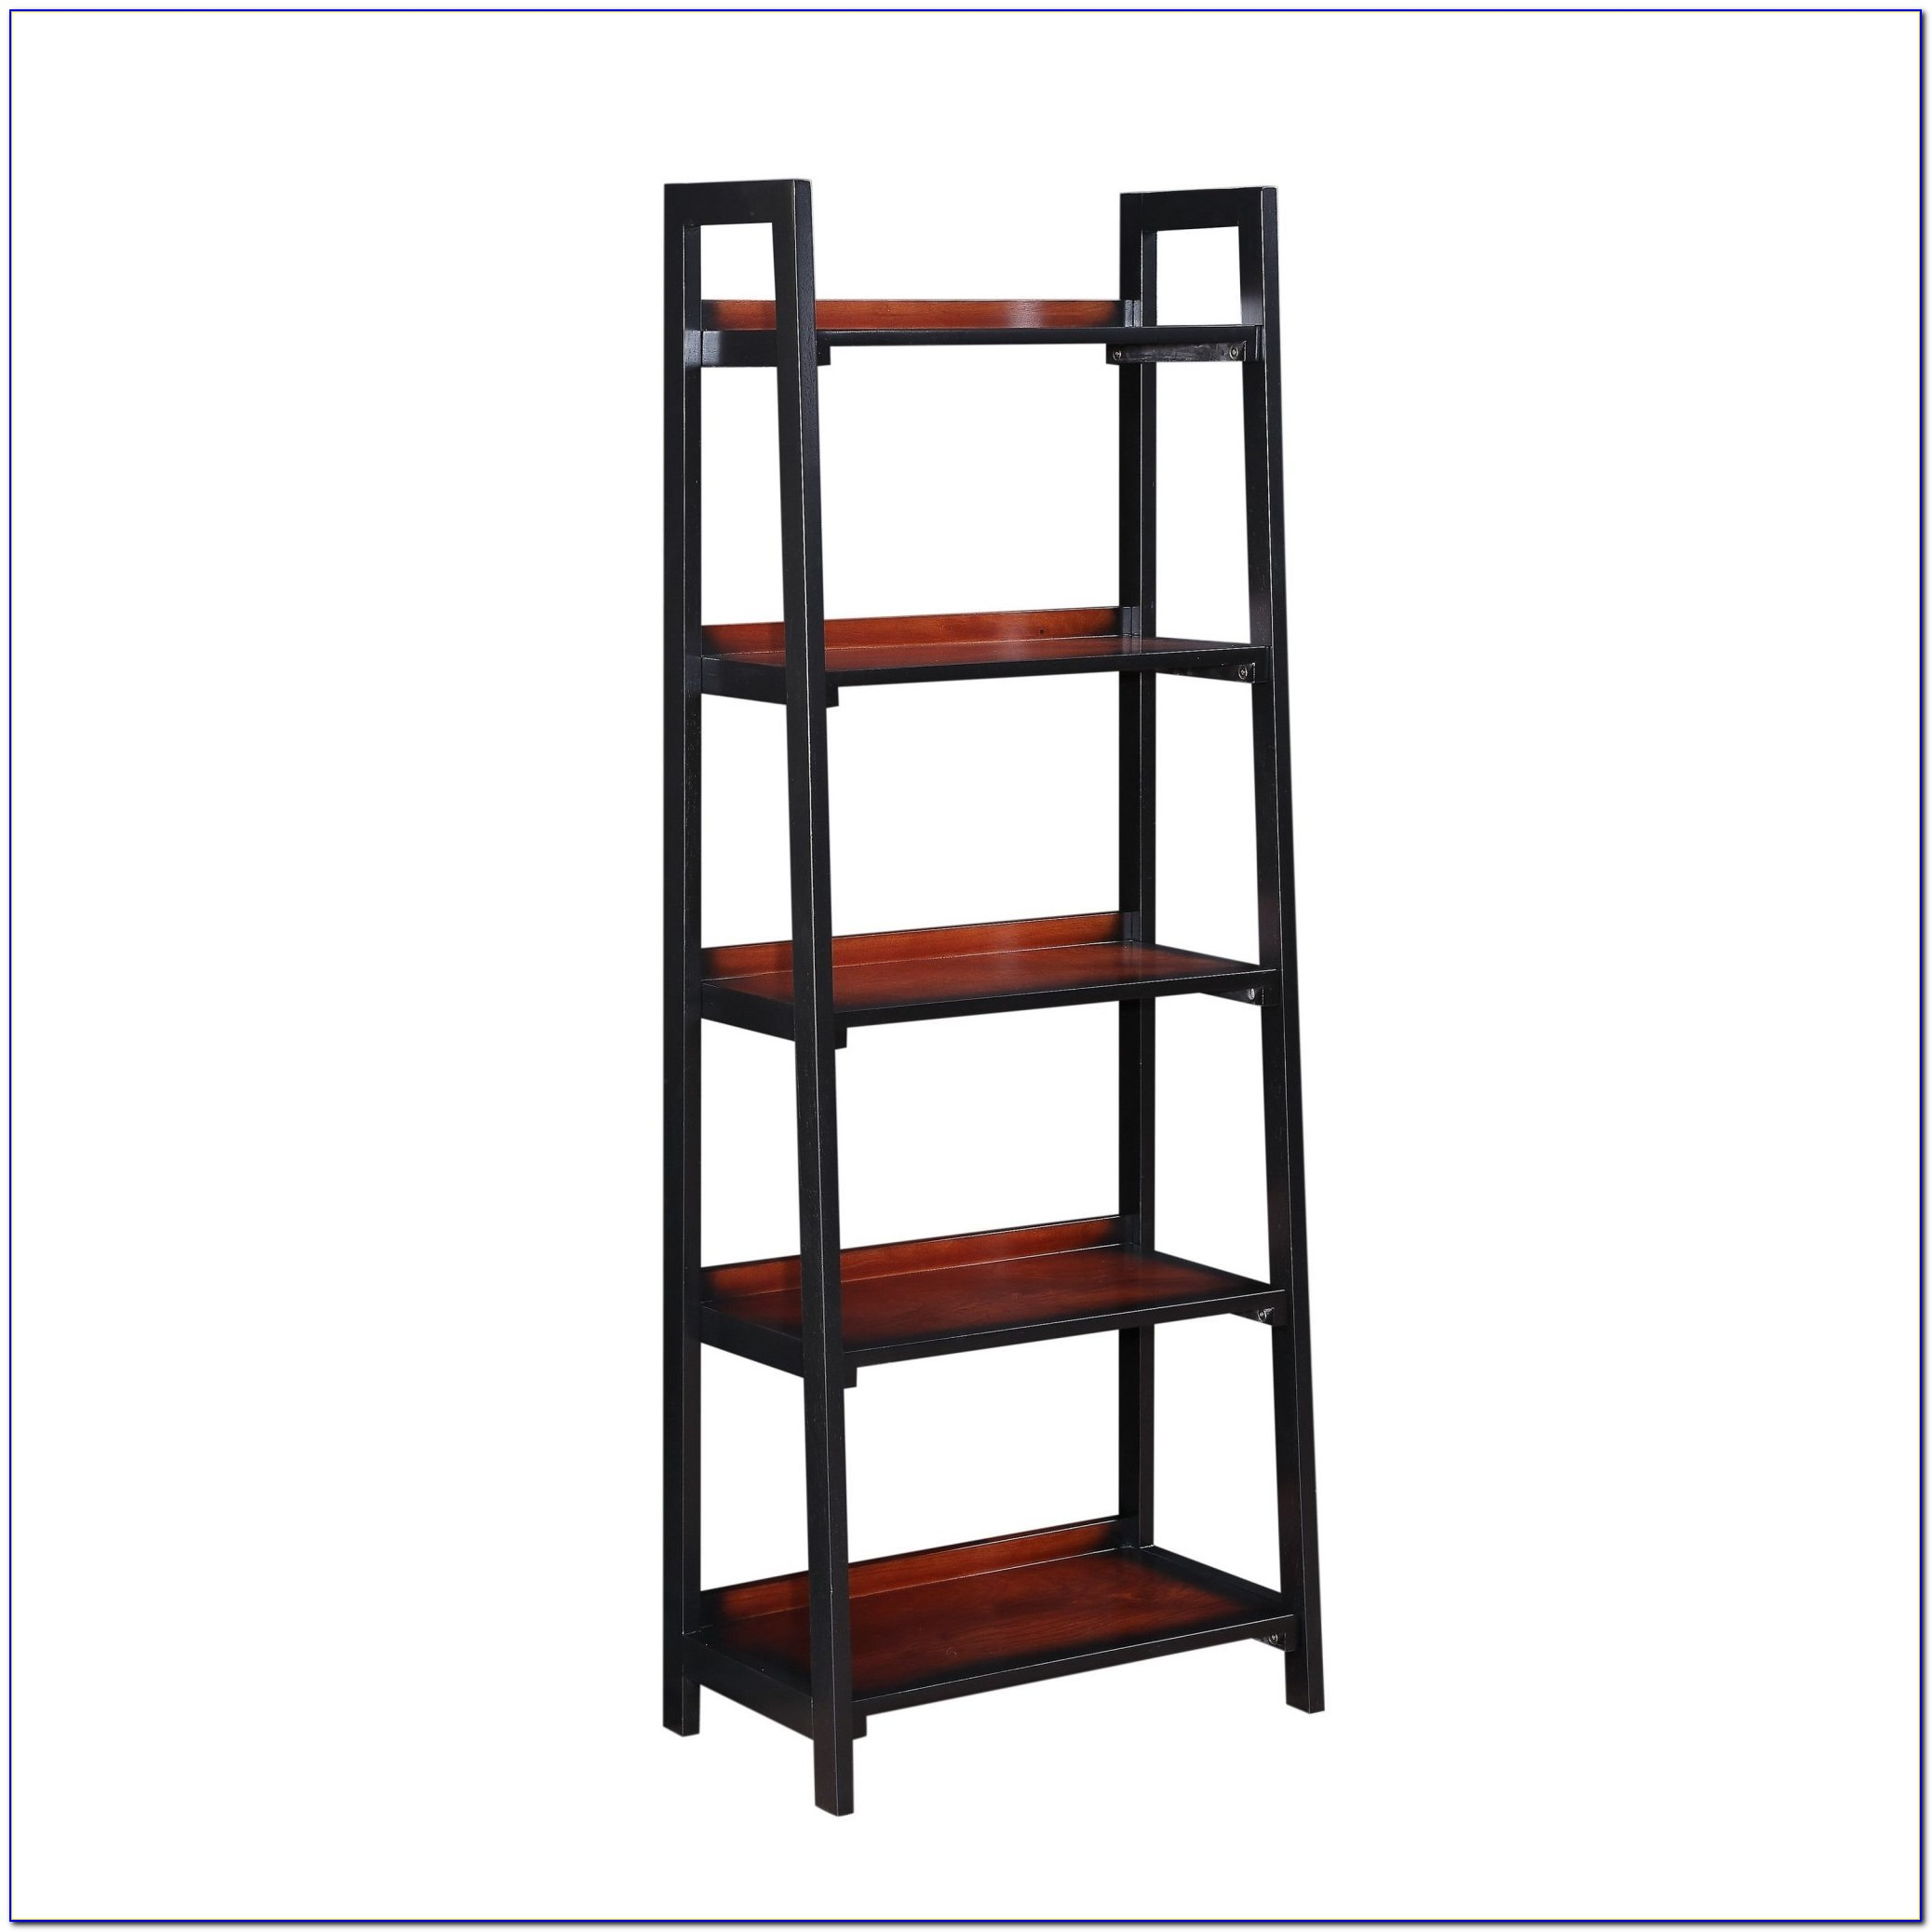 Sauder Ladder Shelves